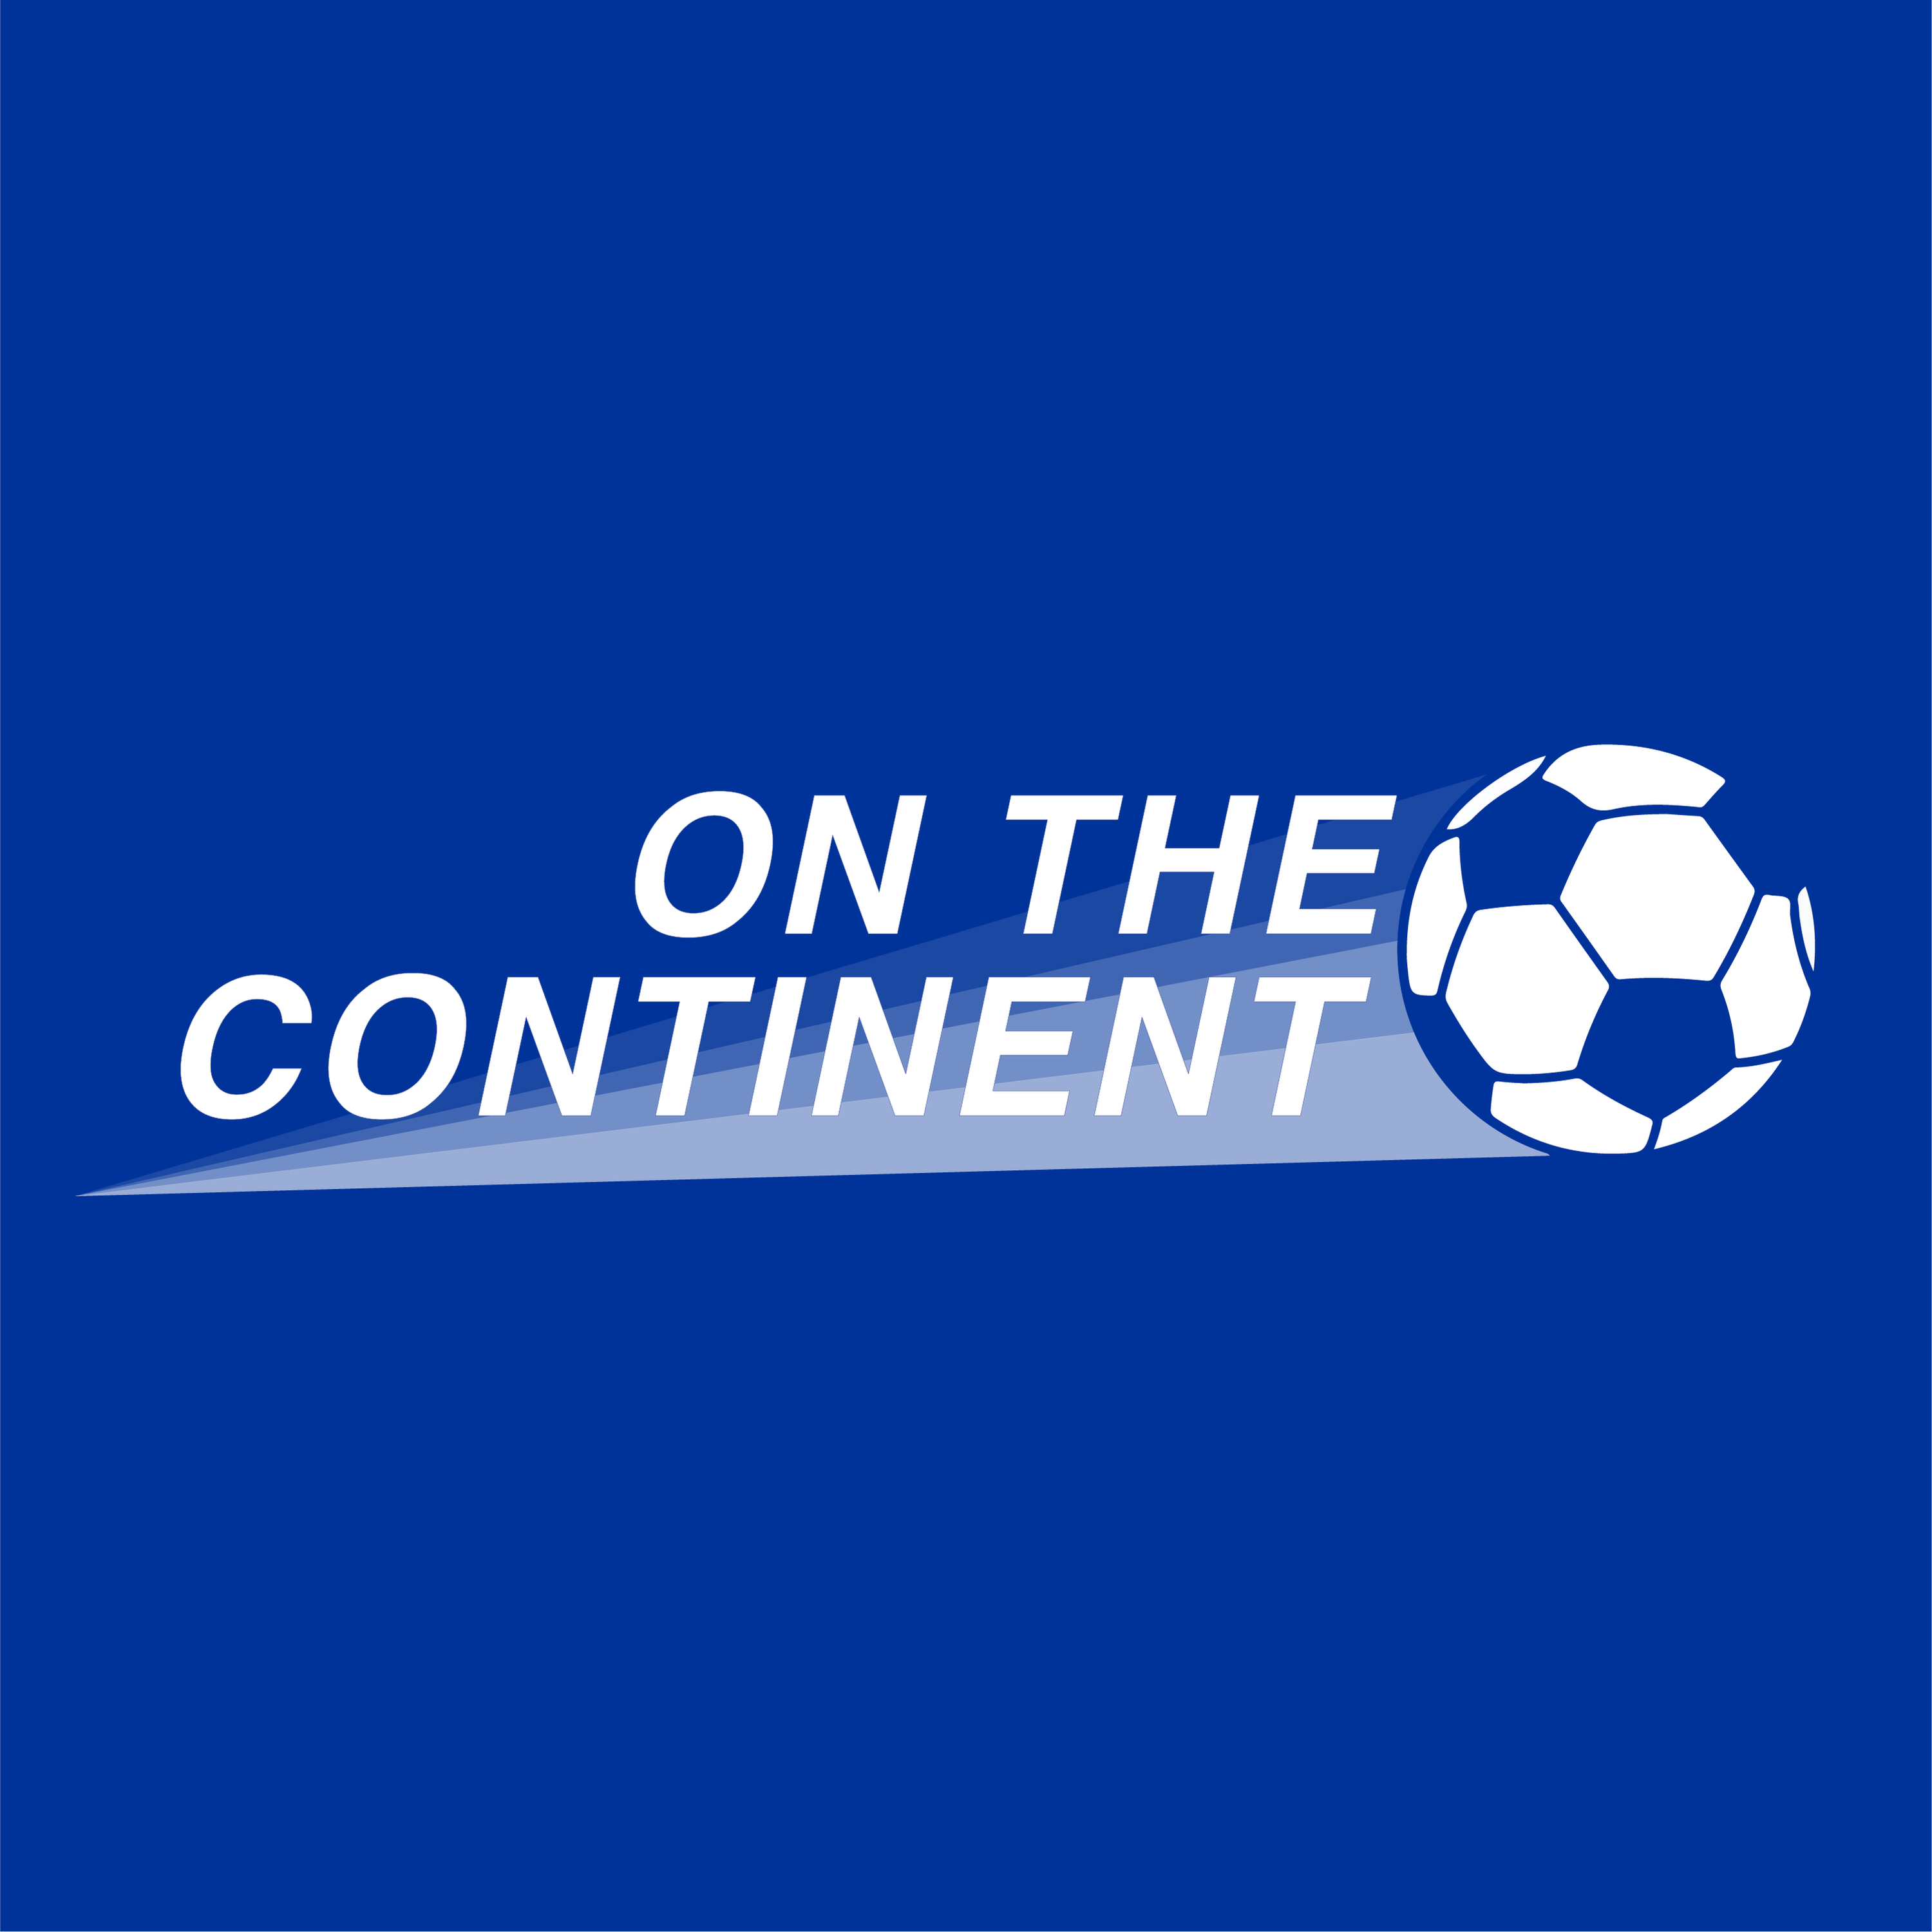 Back in the big time: Real Mallorca make it to La Liga, Palermo in a mess, and Women's World Cup reaches quarter finals